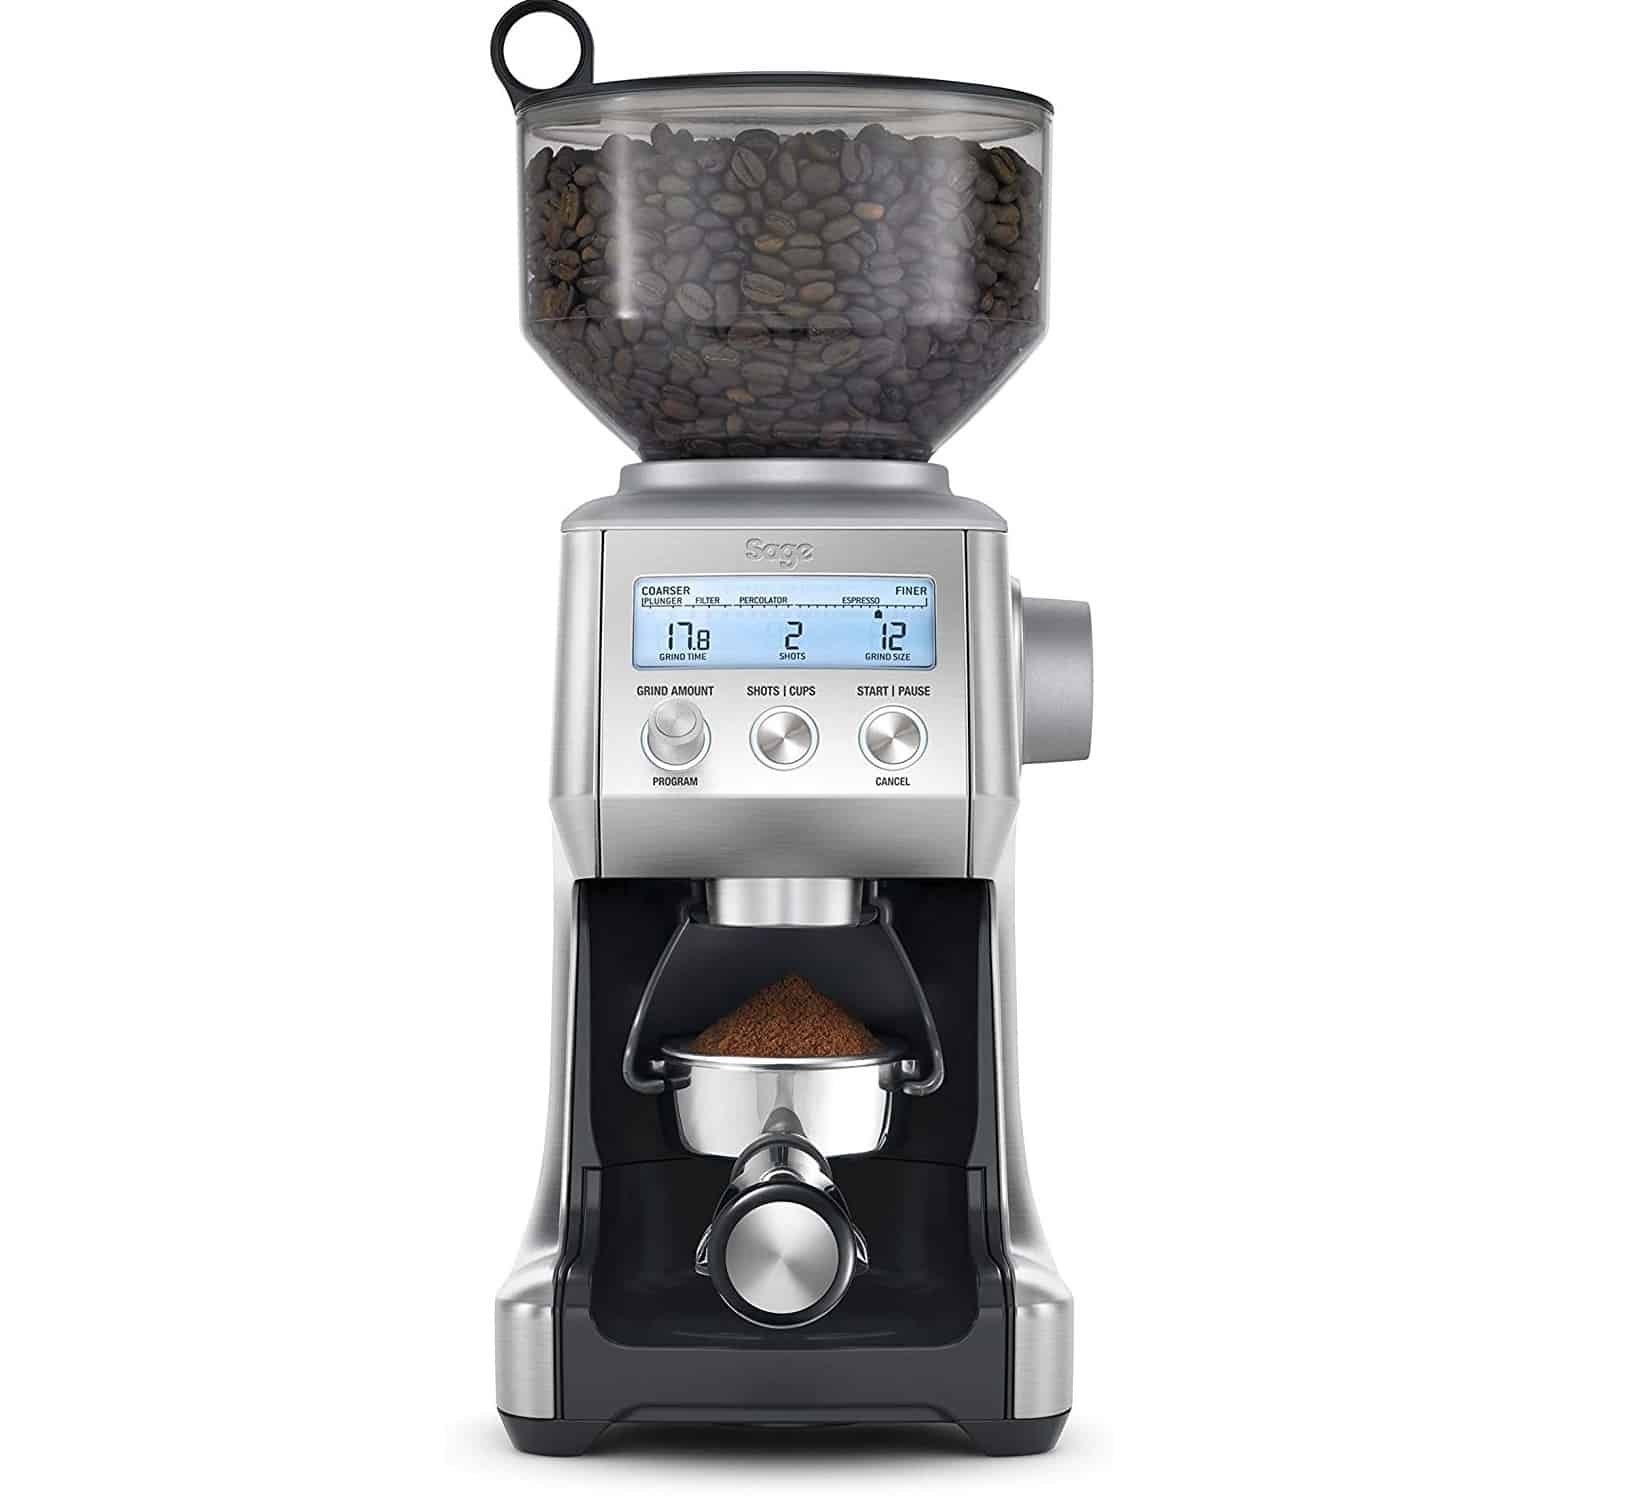 The Best Coffee Grinder